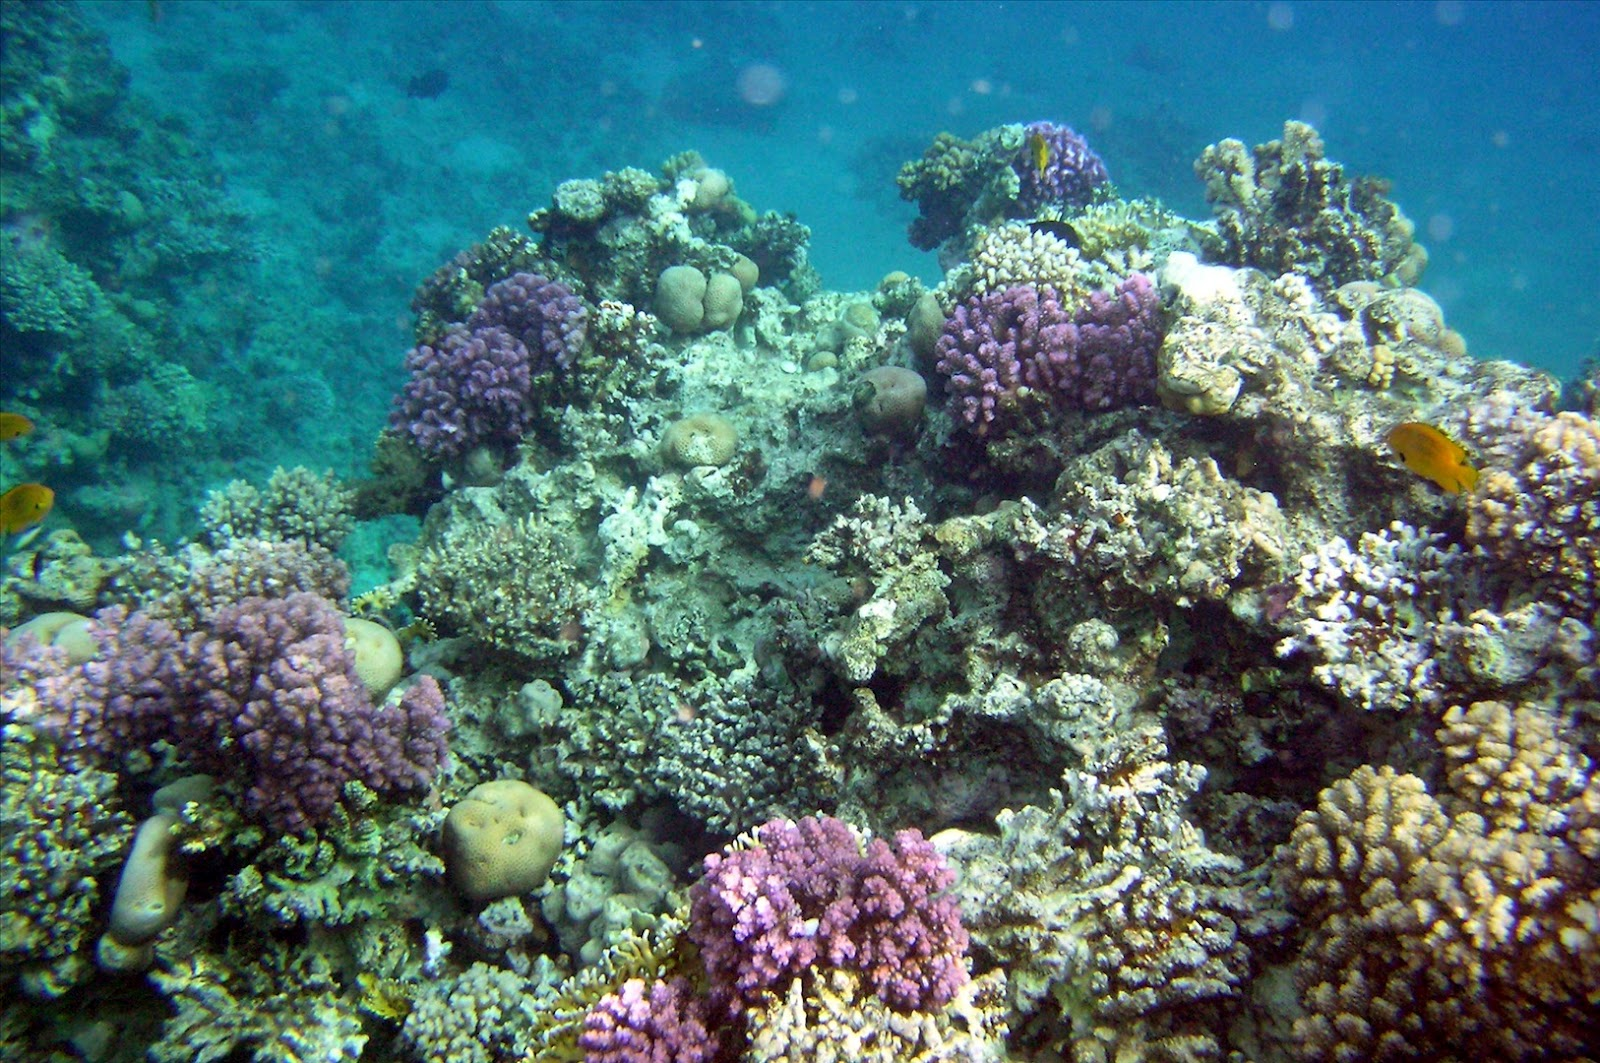 Coral Reef wallpapers | christianhdwallpaper